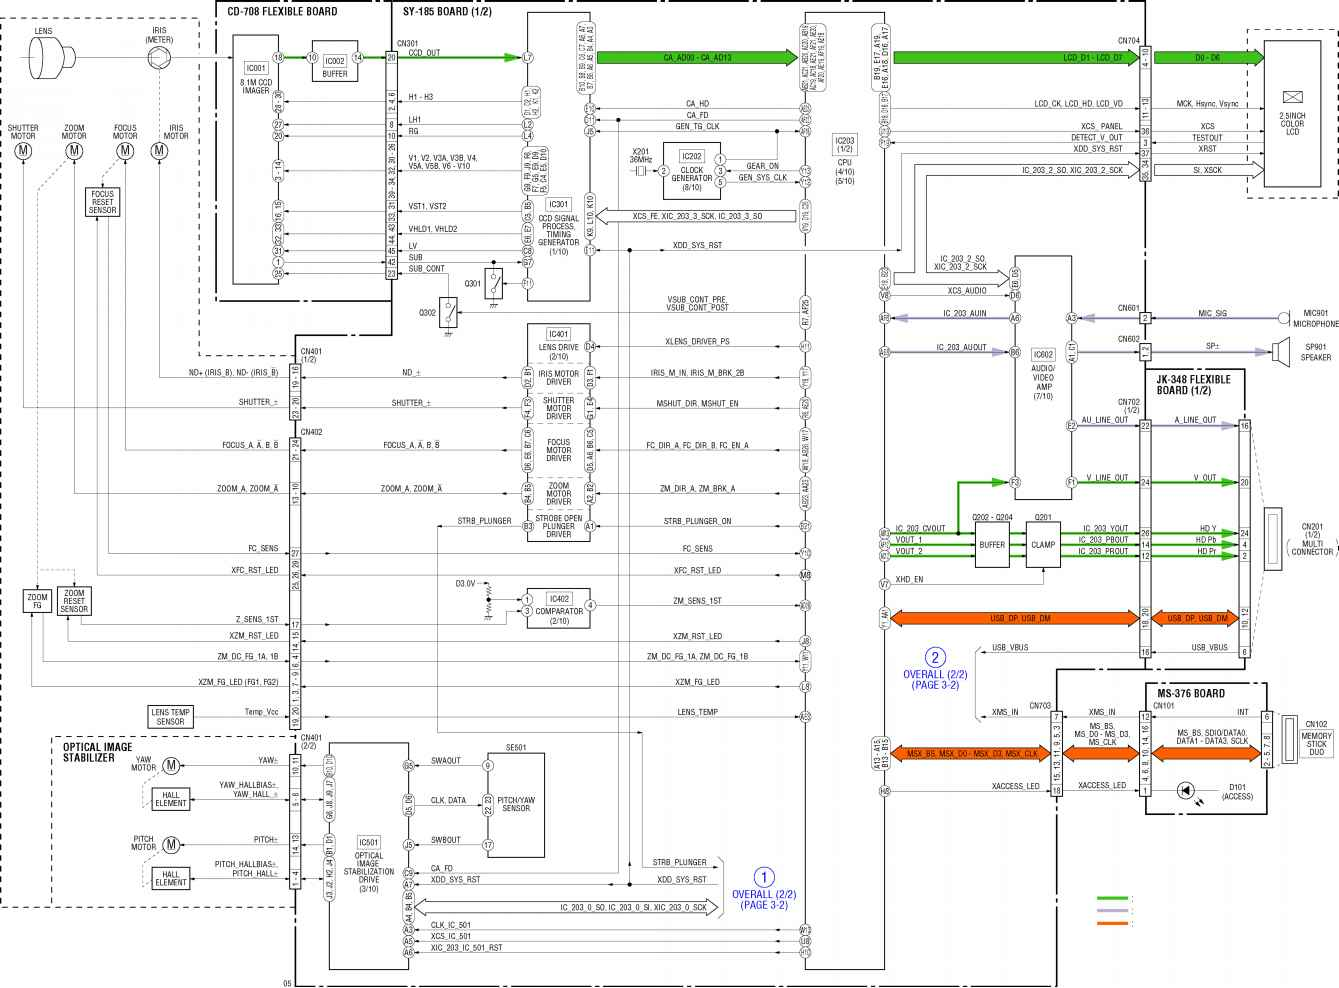 Dsc Gs Boost Wiring Diagram Electricity Basics 101 Smoke Alarm Link Sony H3 L2 Raynet Repair Services Rh Raynetrepair Us Fire Suppression System Control Board